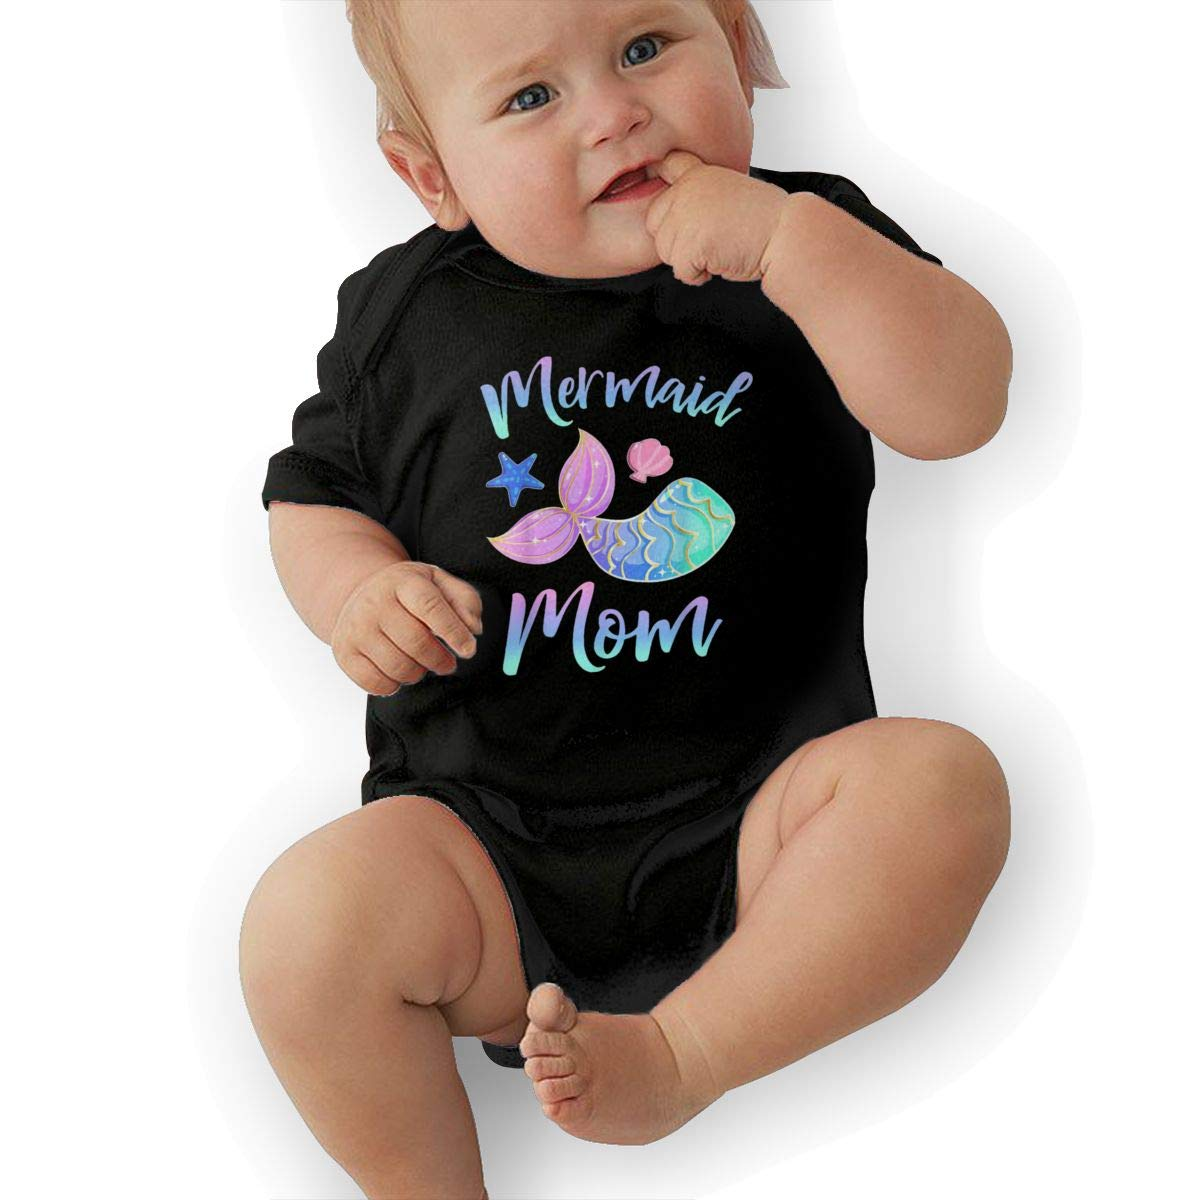 Baby Rompers One Piece Jumpsuits Summer Outfits Clothes Black Mermaid Mom 2